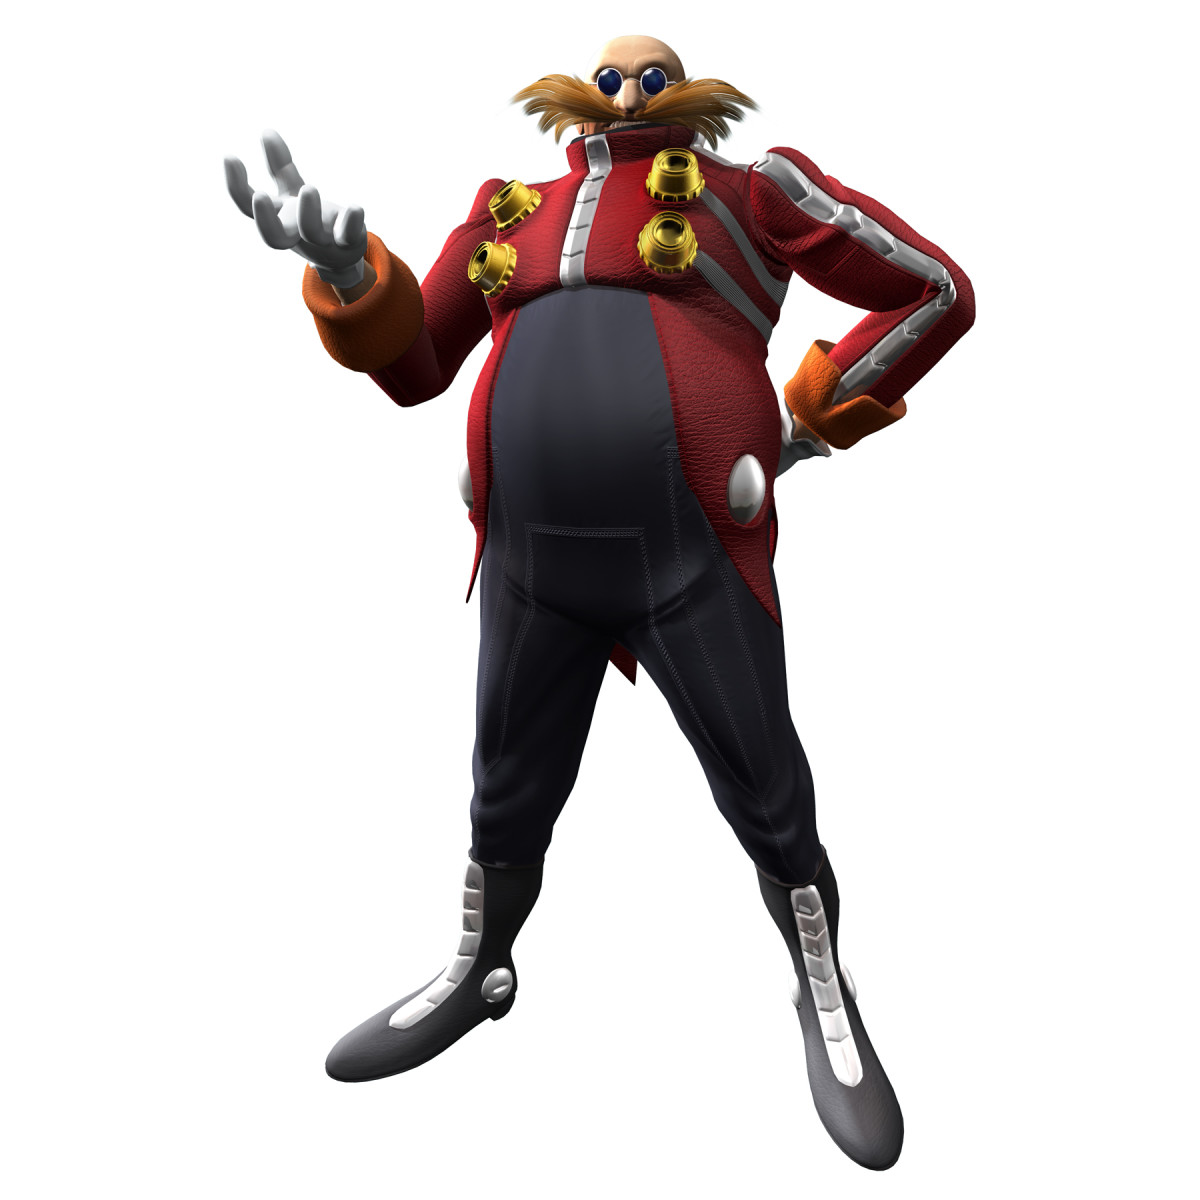 Dr Eggman as he appeared in Sonic the Hedgehog 2006